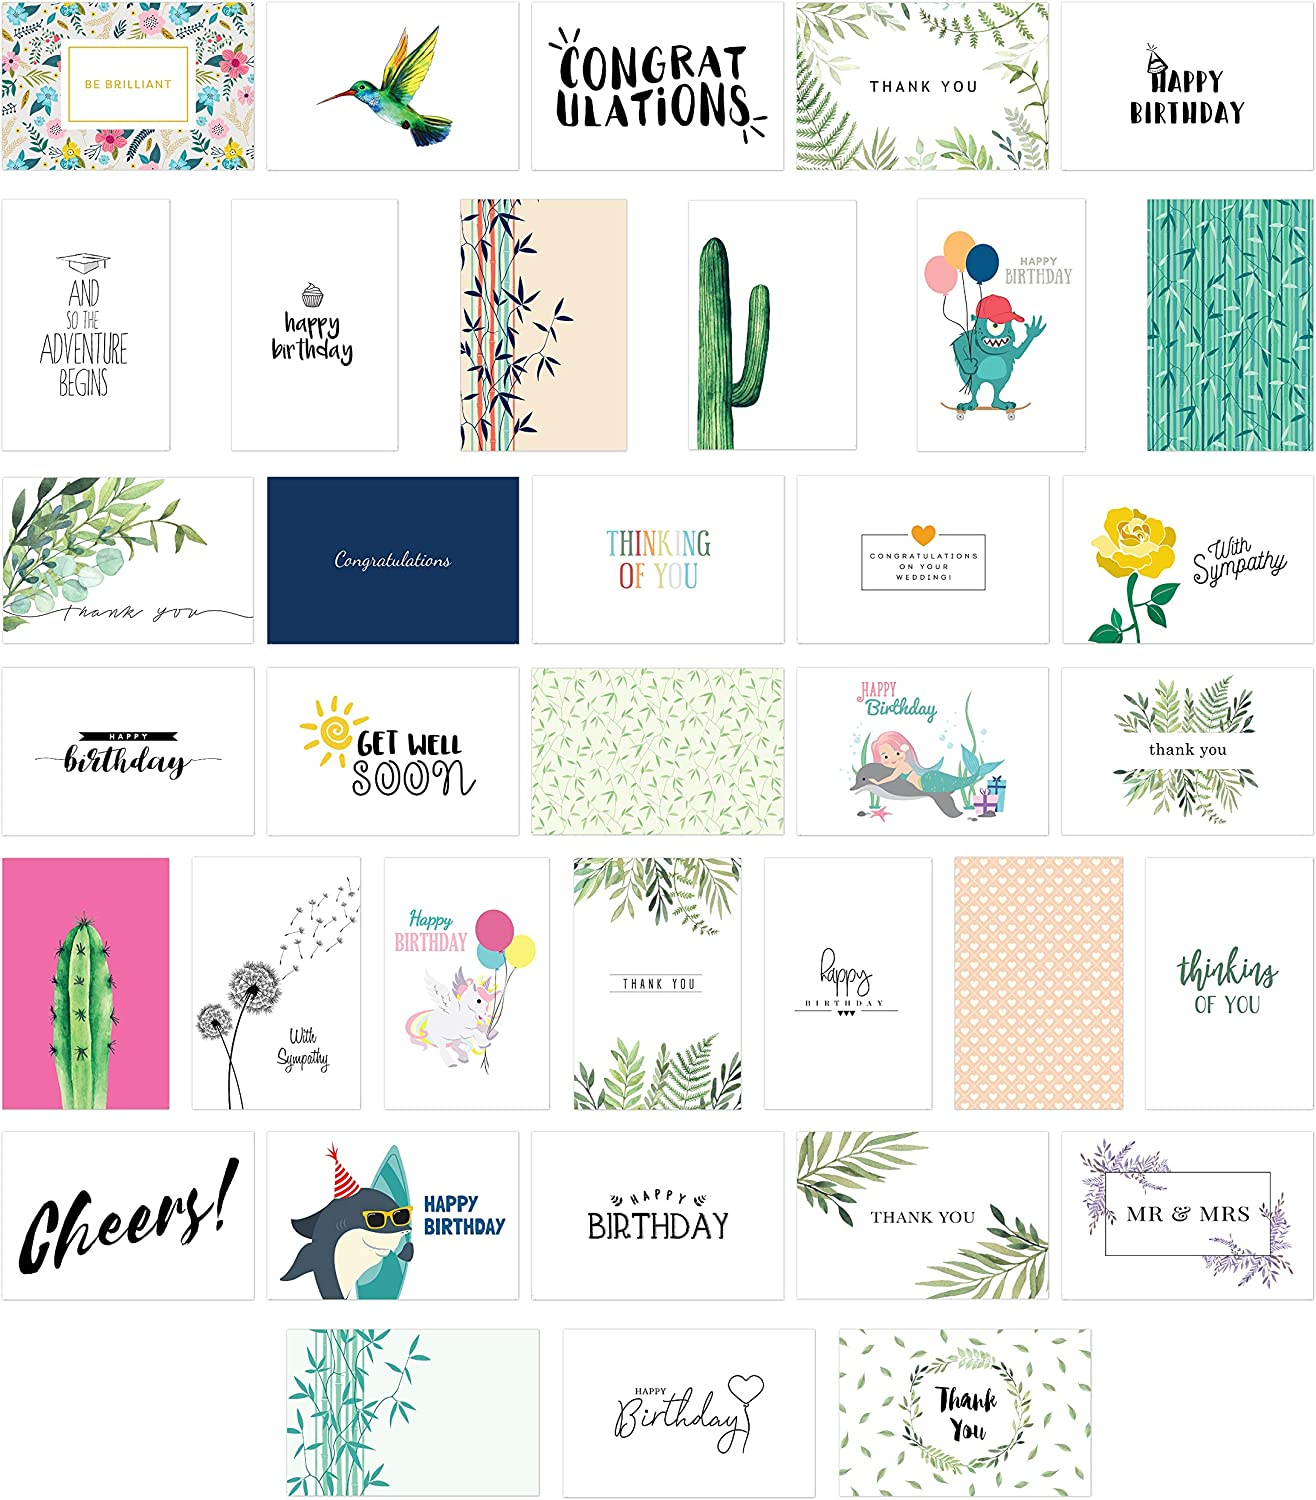 All Occasion Greeting Cards Assortment 30 Pack Greeting Cards for Birthdays Baby Christmas Envelopes and Sealing Stickers Included Thank You Green Sympathy